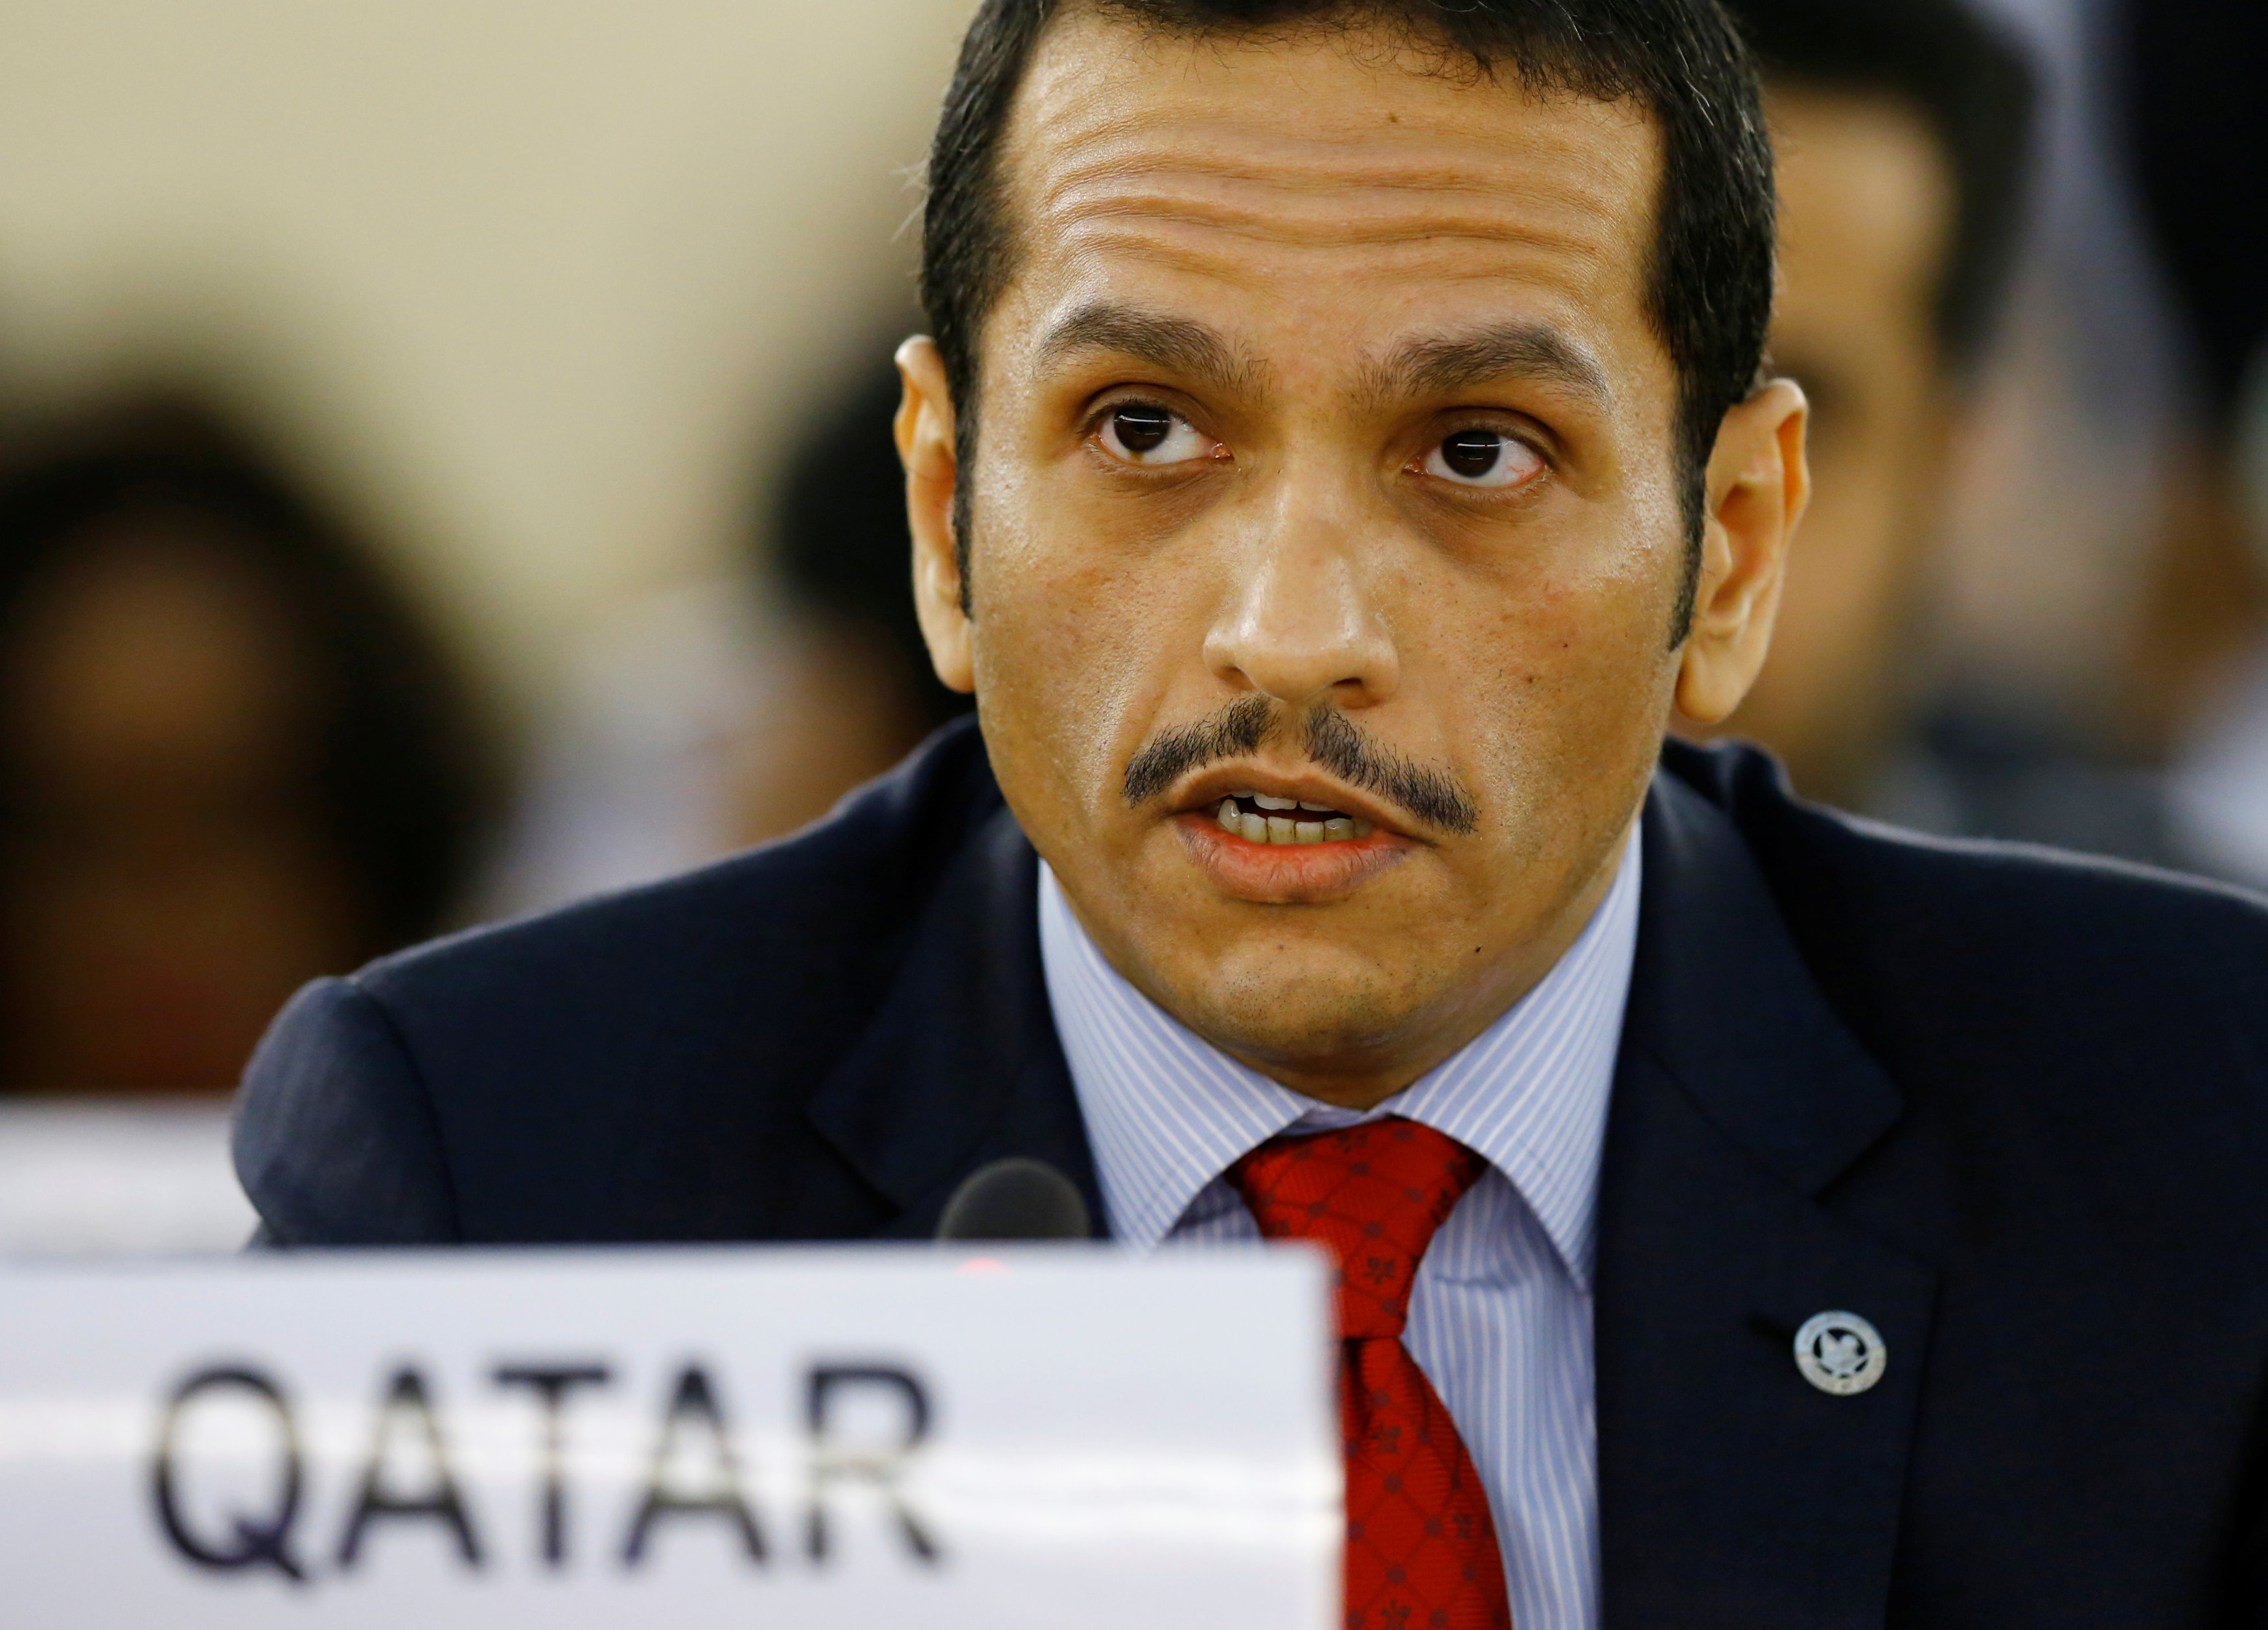 Qatar's foreign minister Sheikh Mohammed bin Abdulrahman al-Thani attends the 36th Session of the Human Rights Council in Geneva